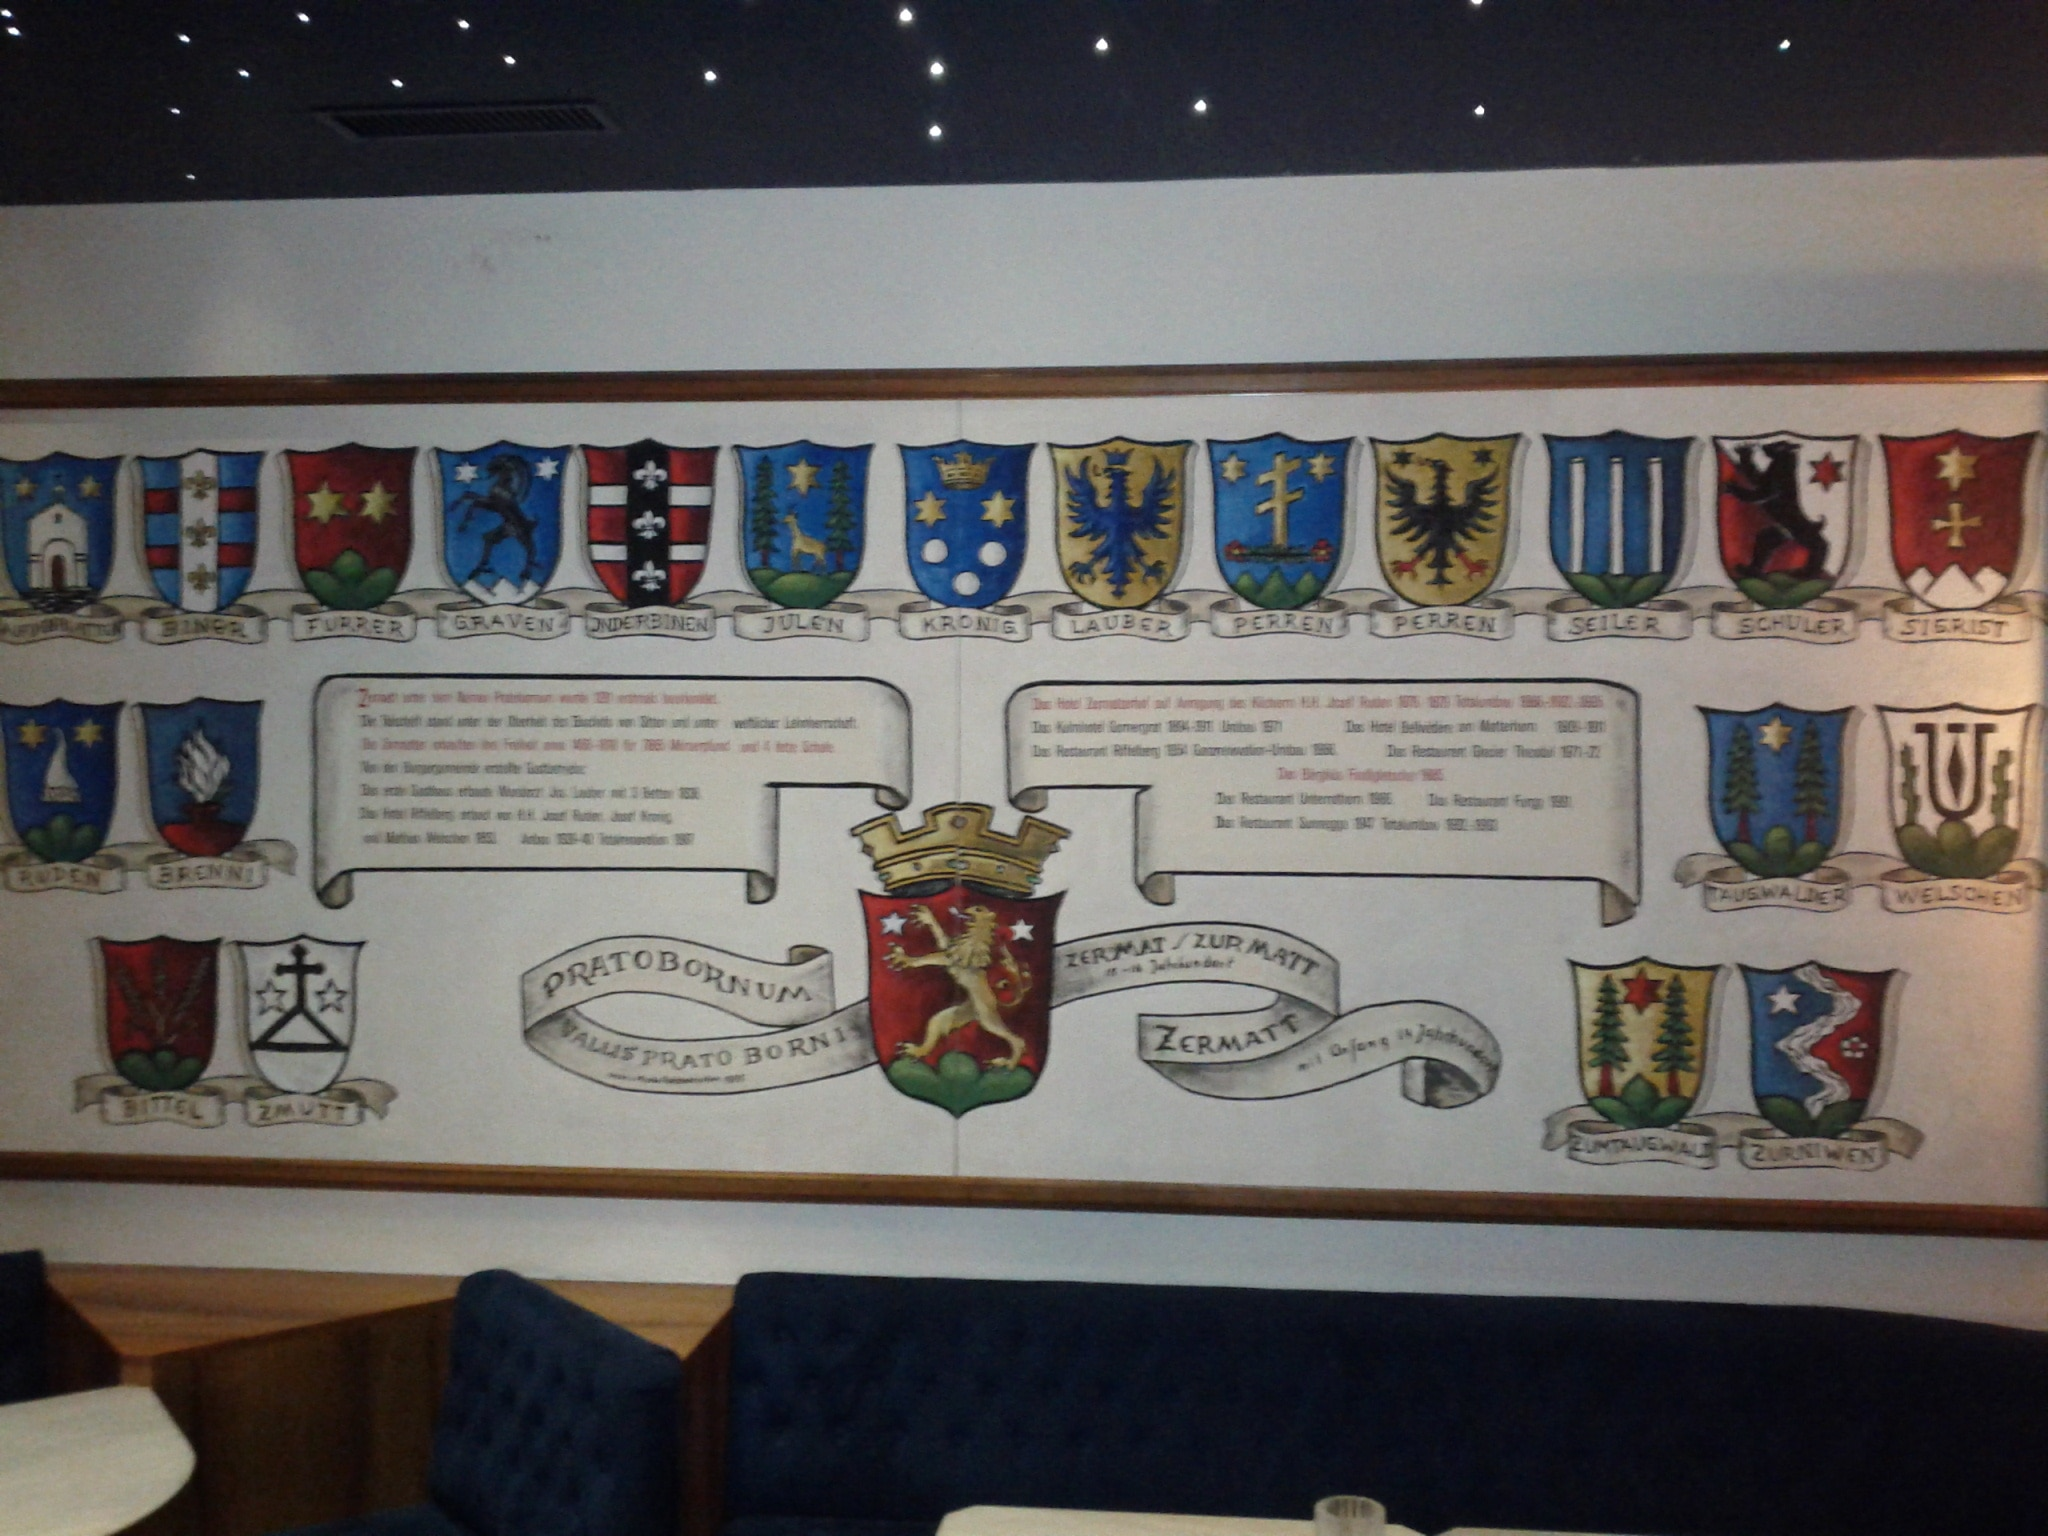 The family crests of the burghers who built the five star Zermatterh​of Hotel, which is not where we're staying.